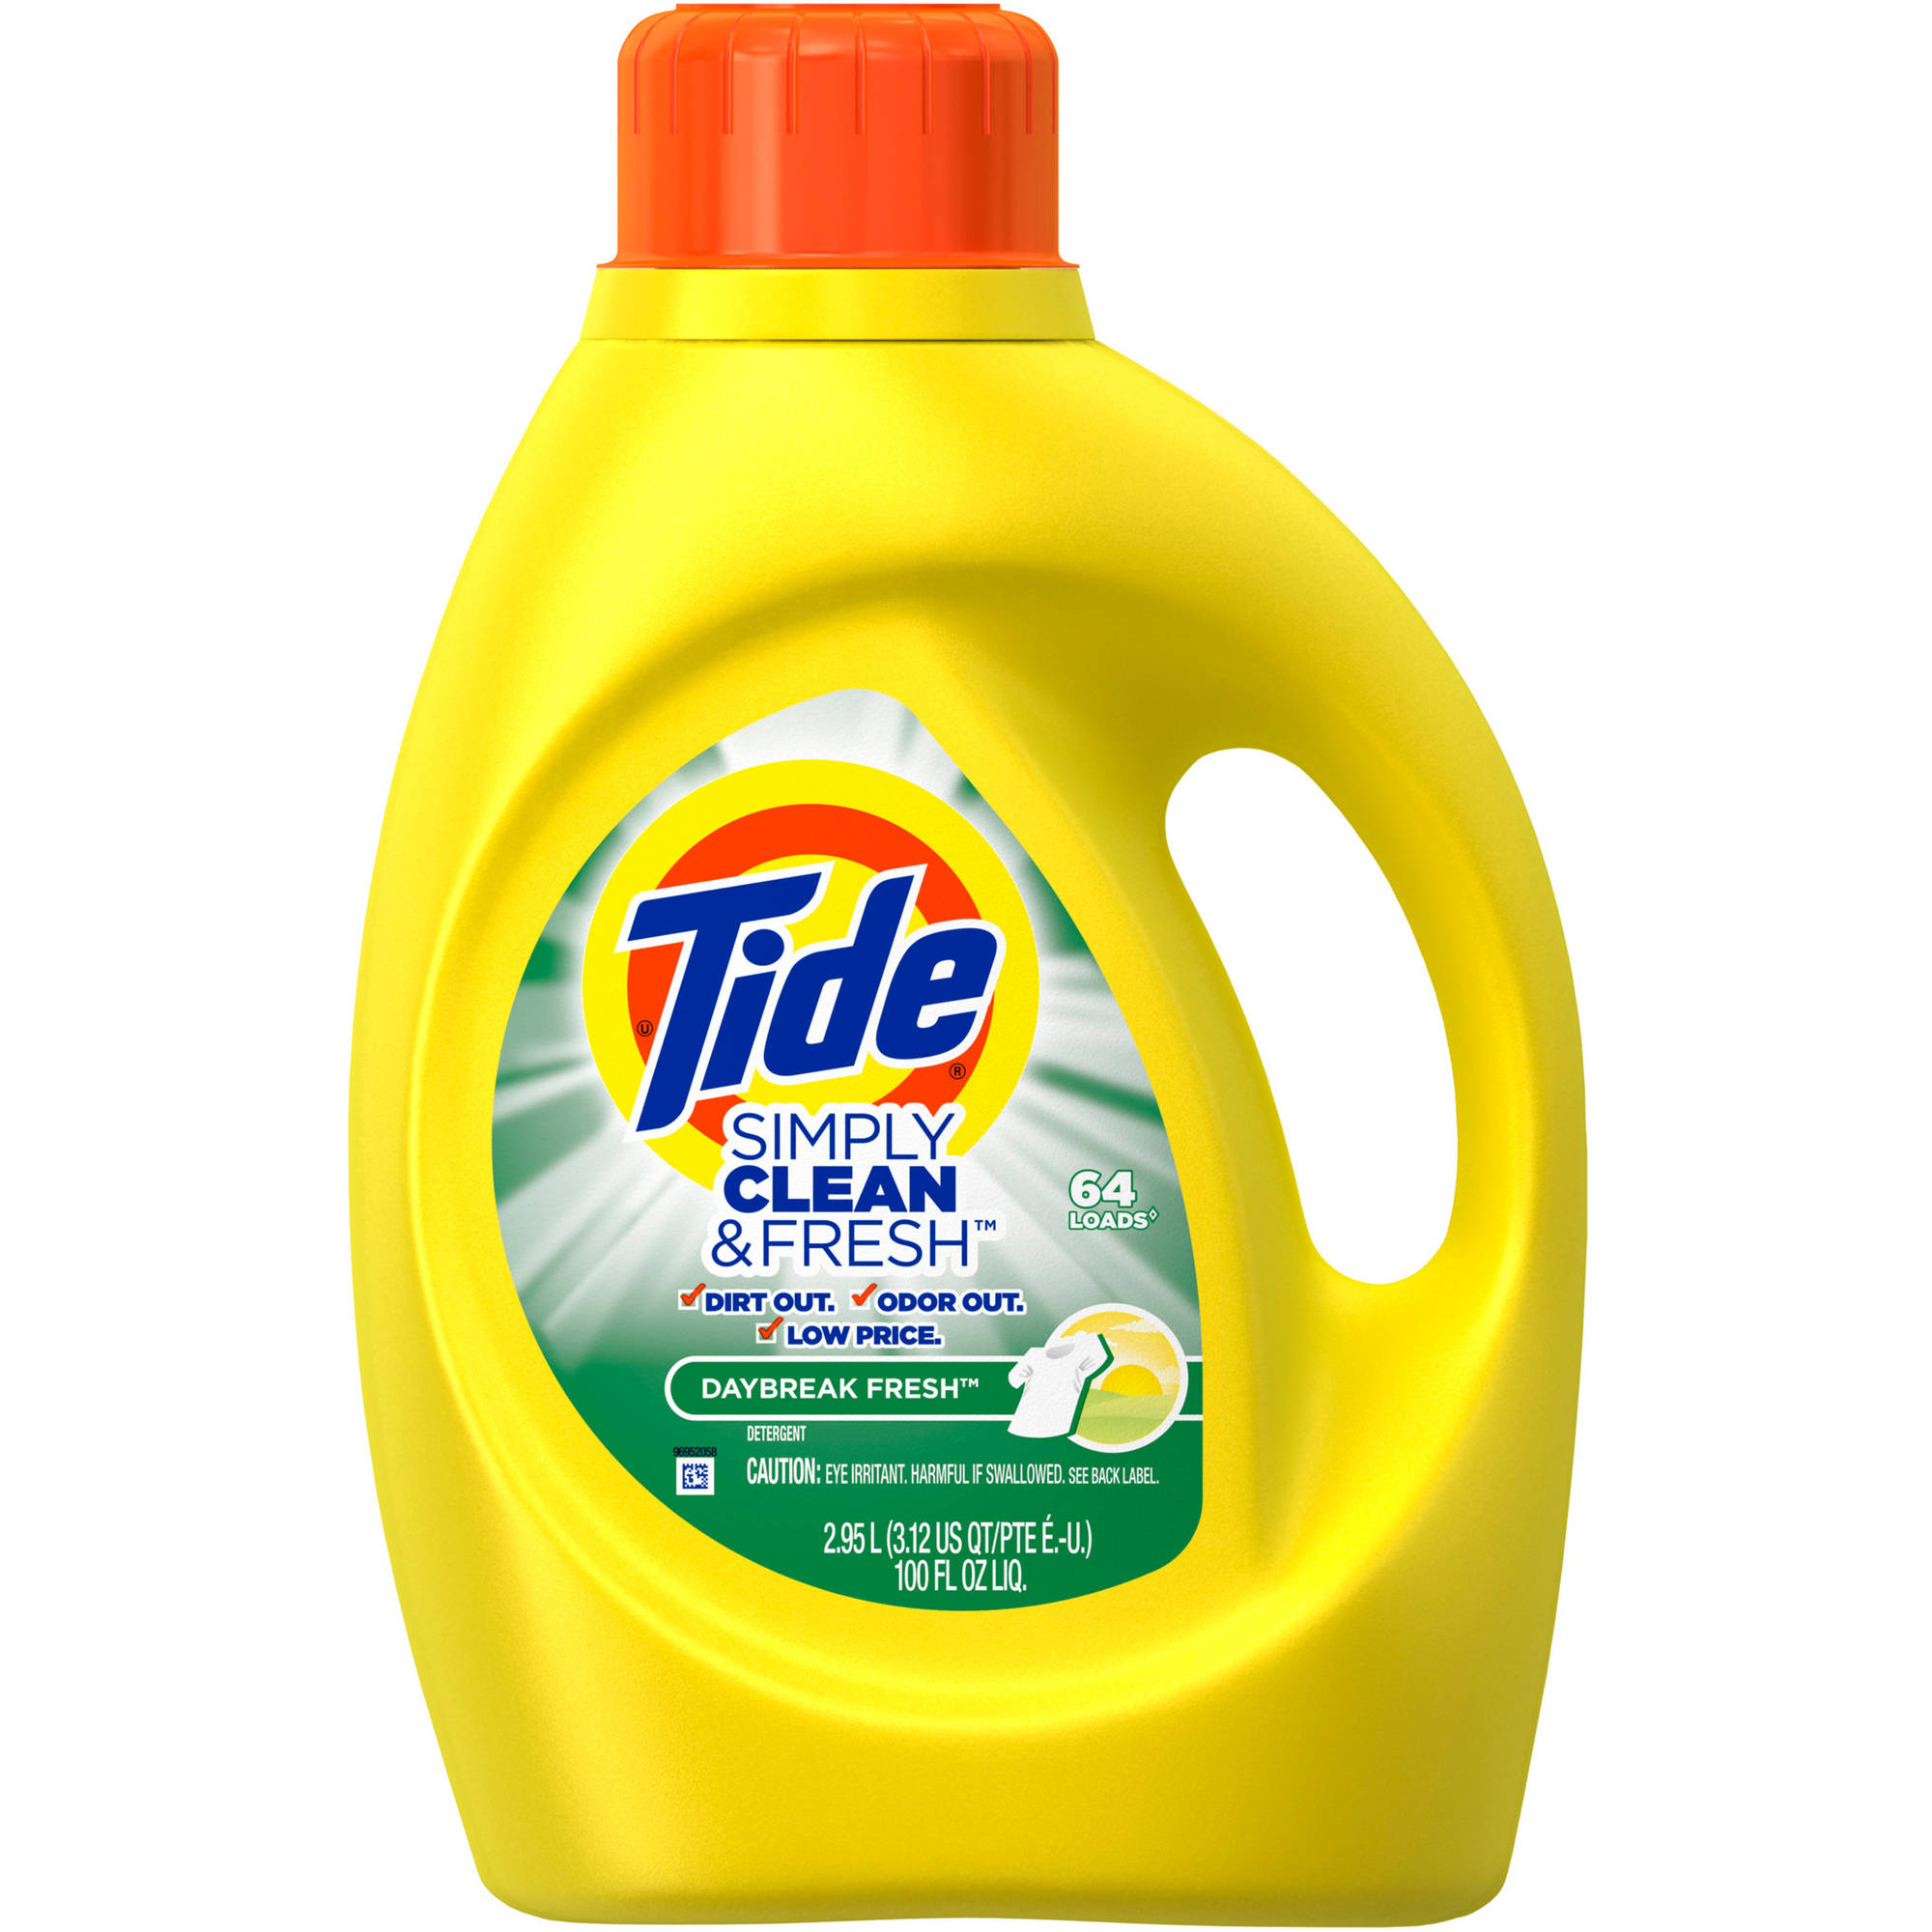 Tide Simply Clean & Fresh HE Liquid Laundry Detergent, Daybreak Fresh Scent, 64 loads, 100 oz